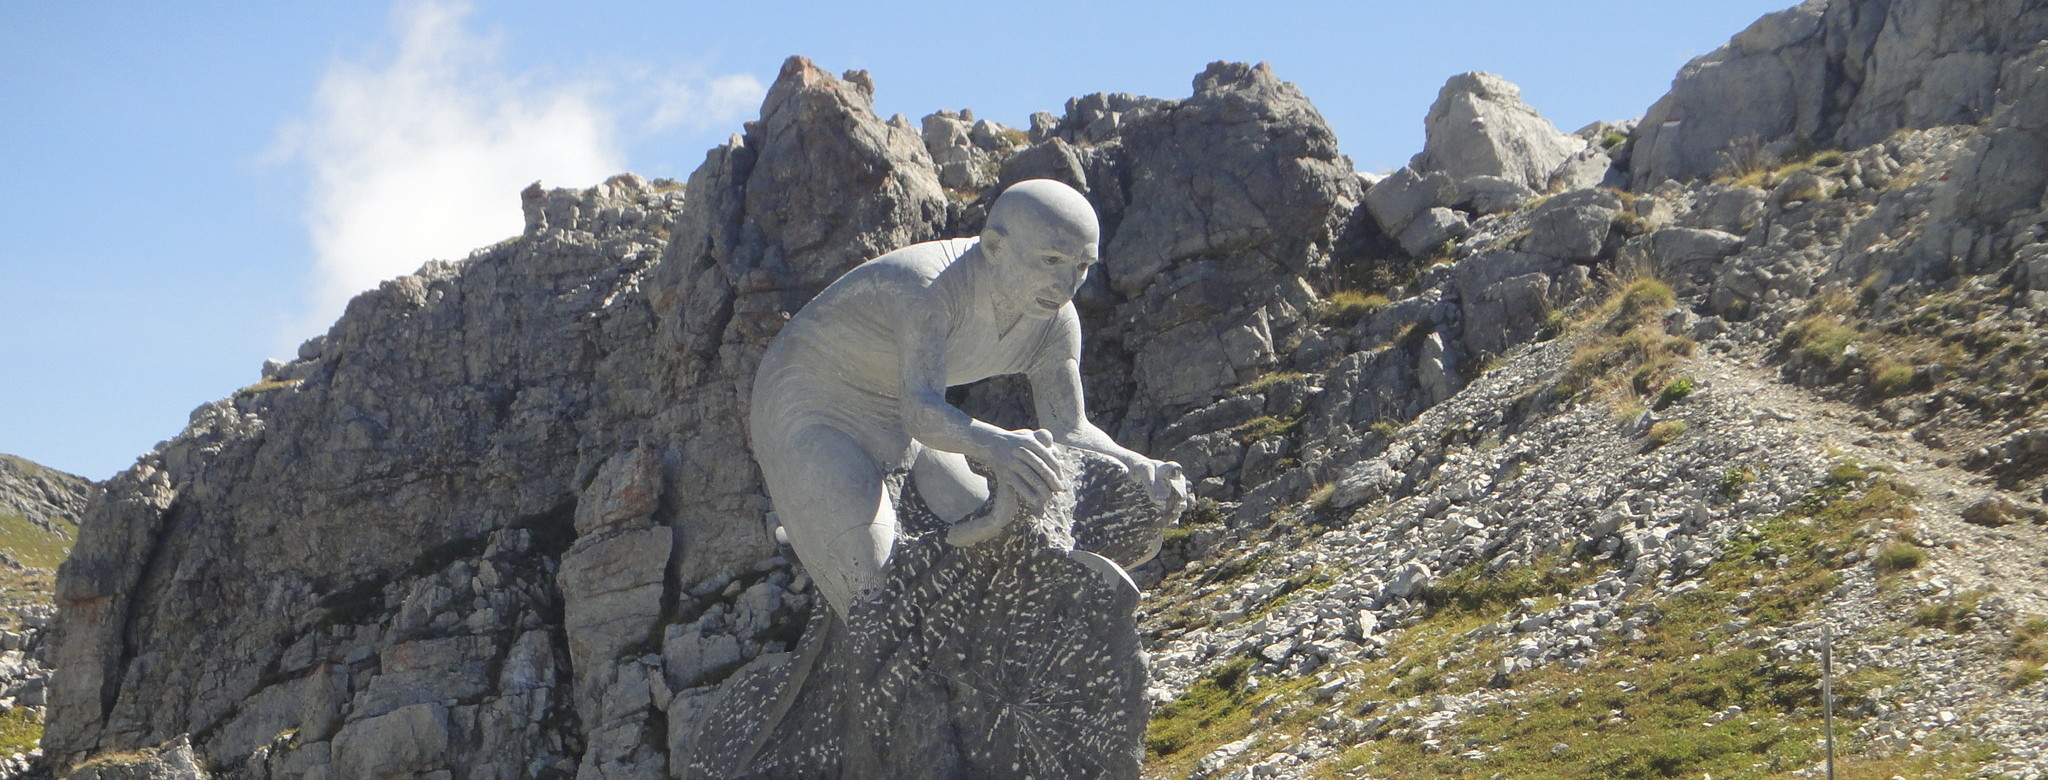 Pantani-Denkmal am Colle dei Morti.